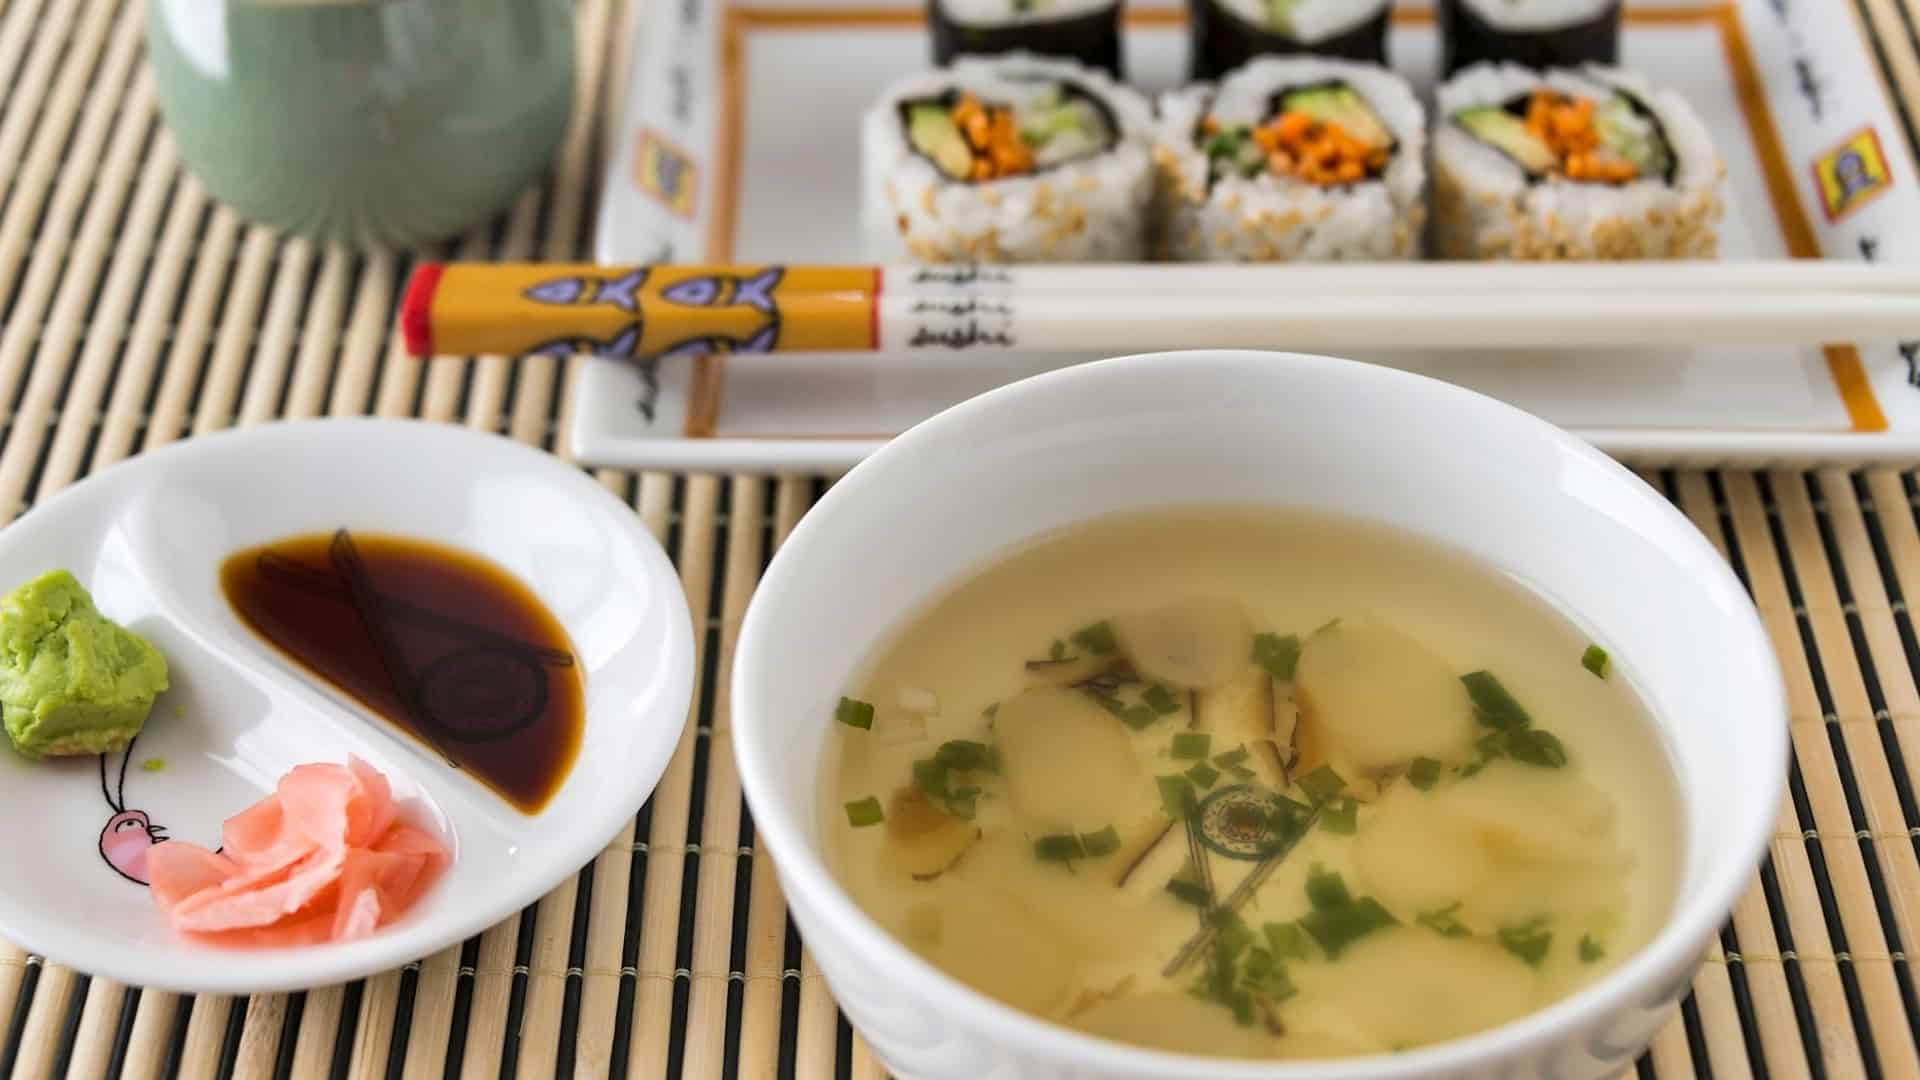 Miso Soup vs Clear Japanese Soup Broth